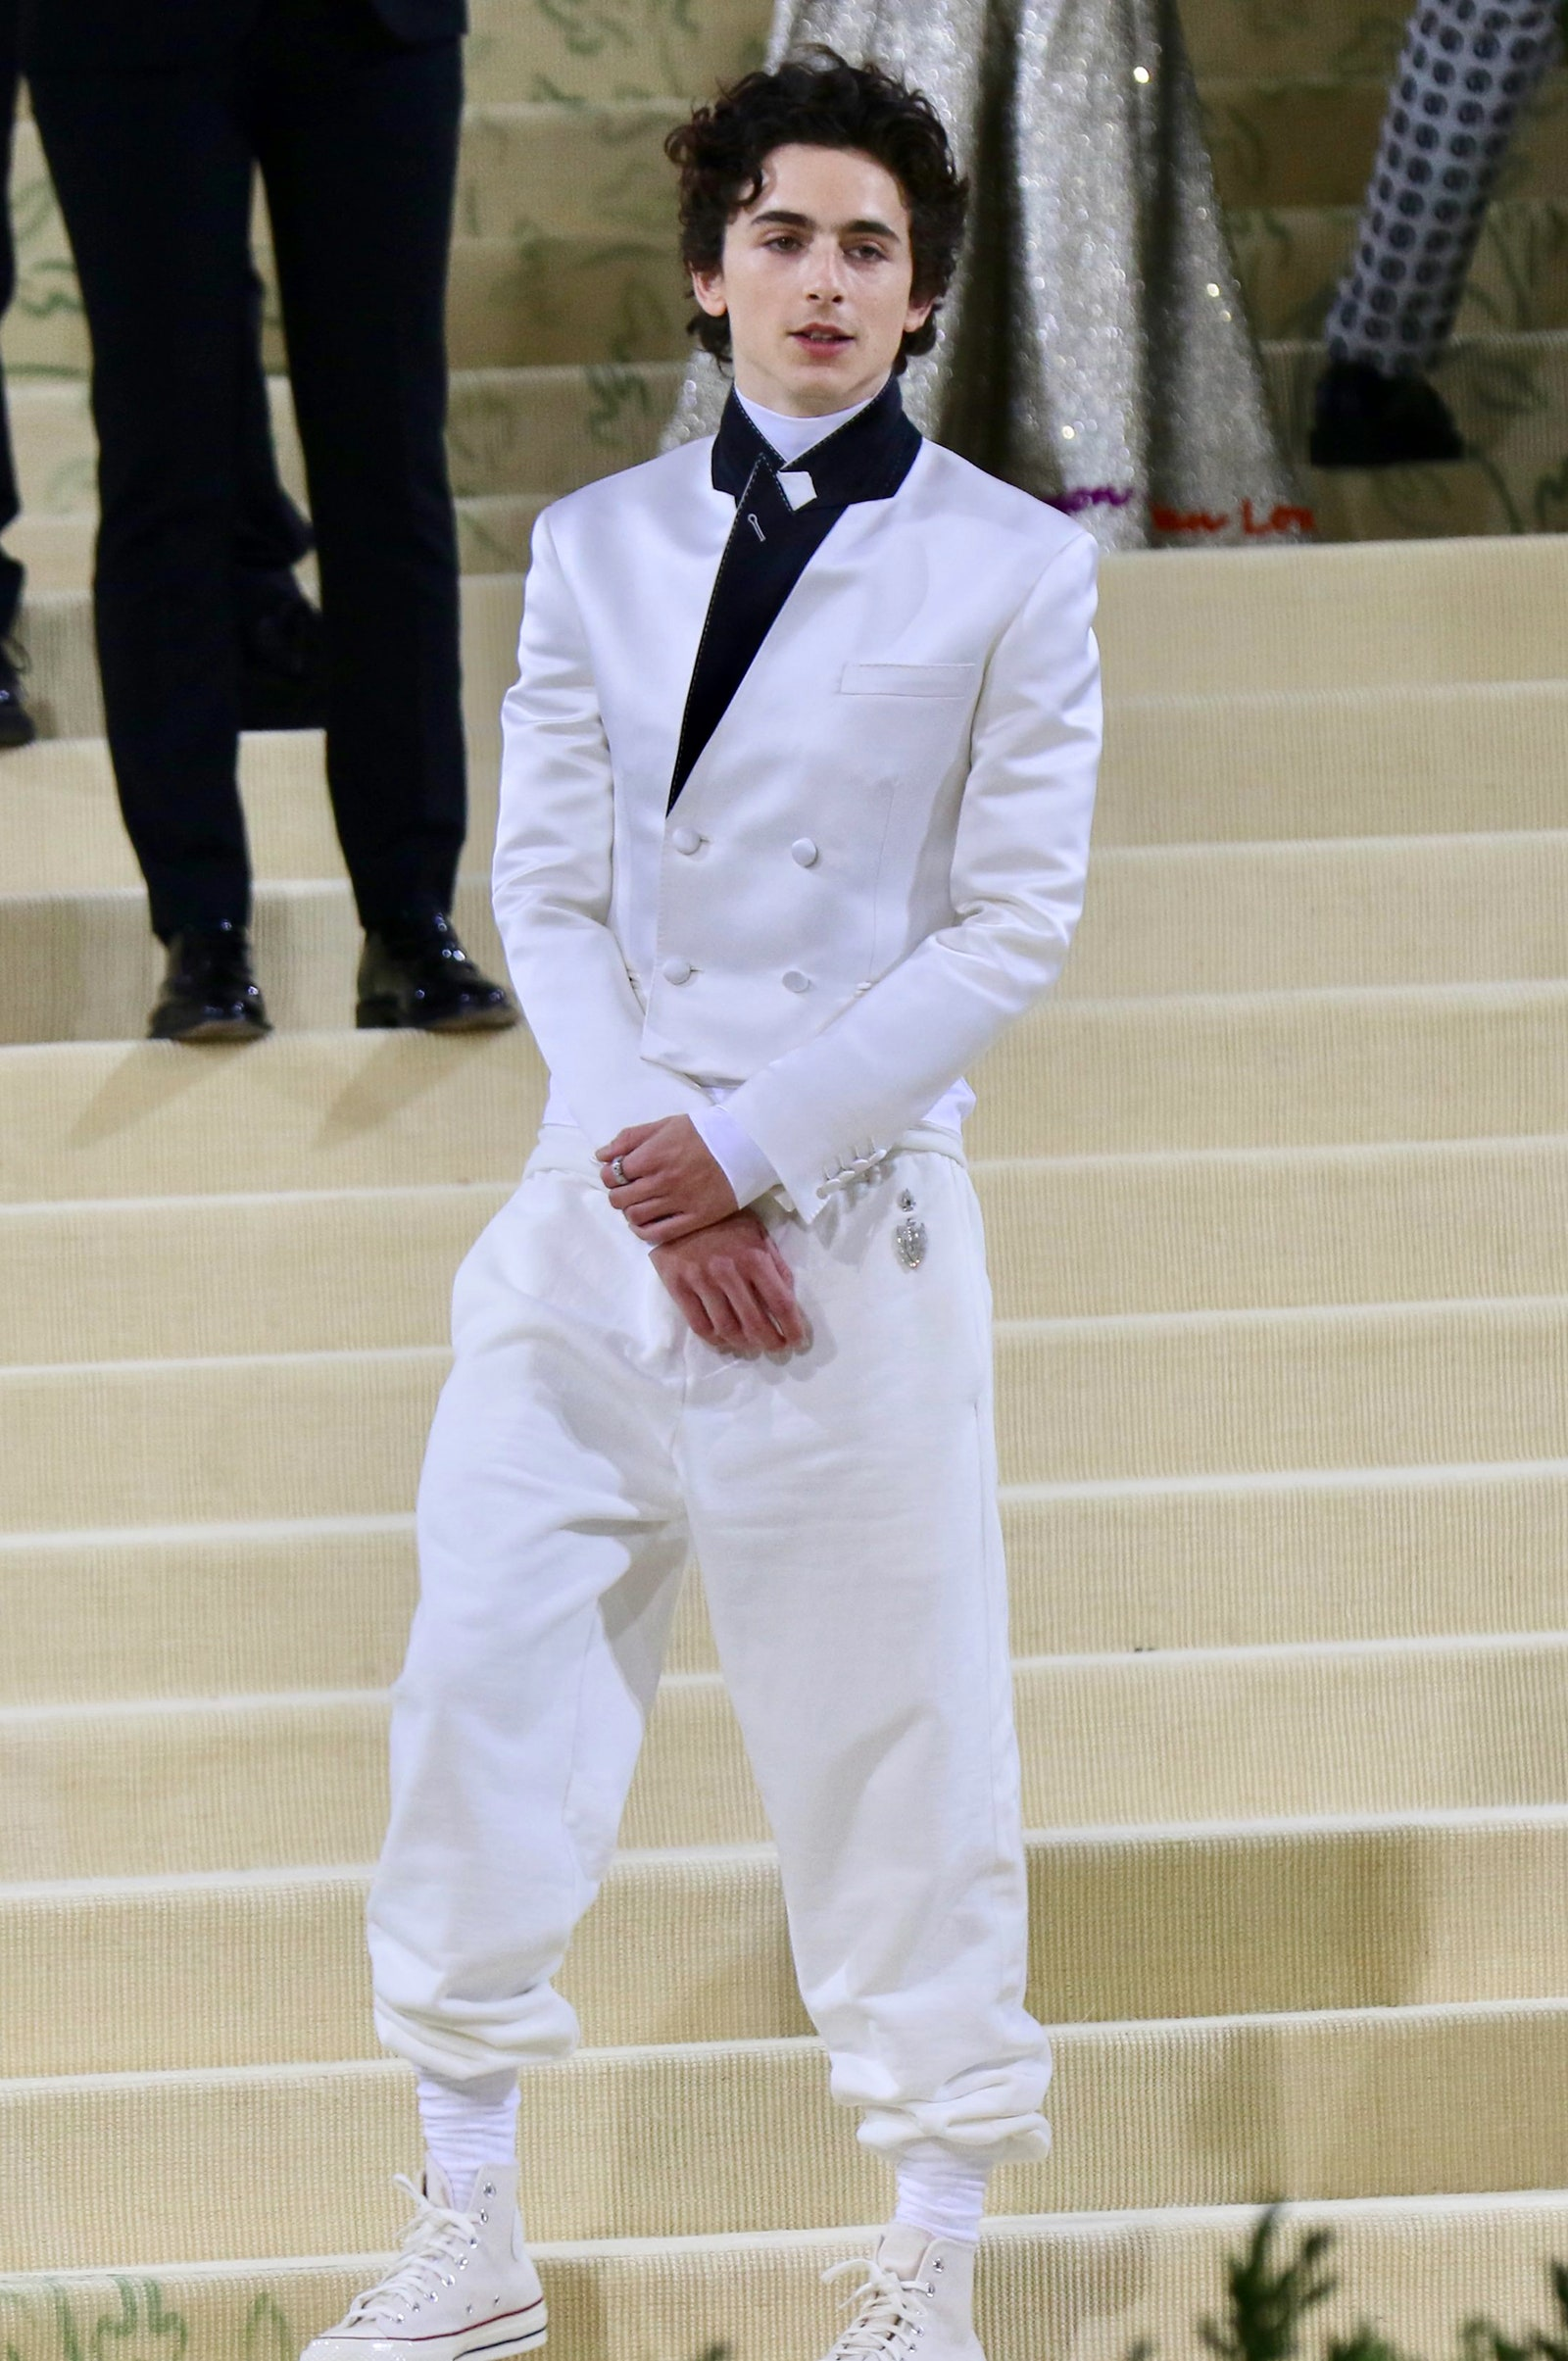 Timothee Chalamet wearing a white suit and black shirt at the MET gala.